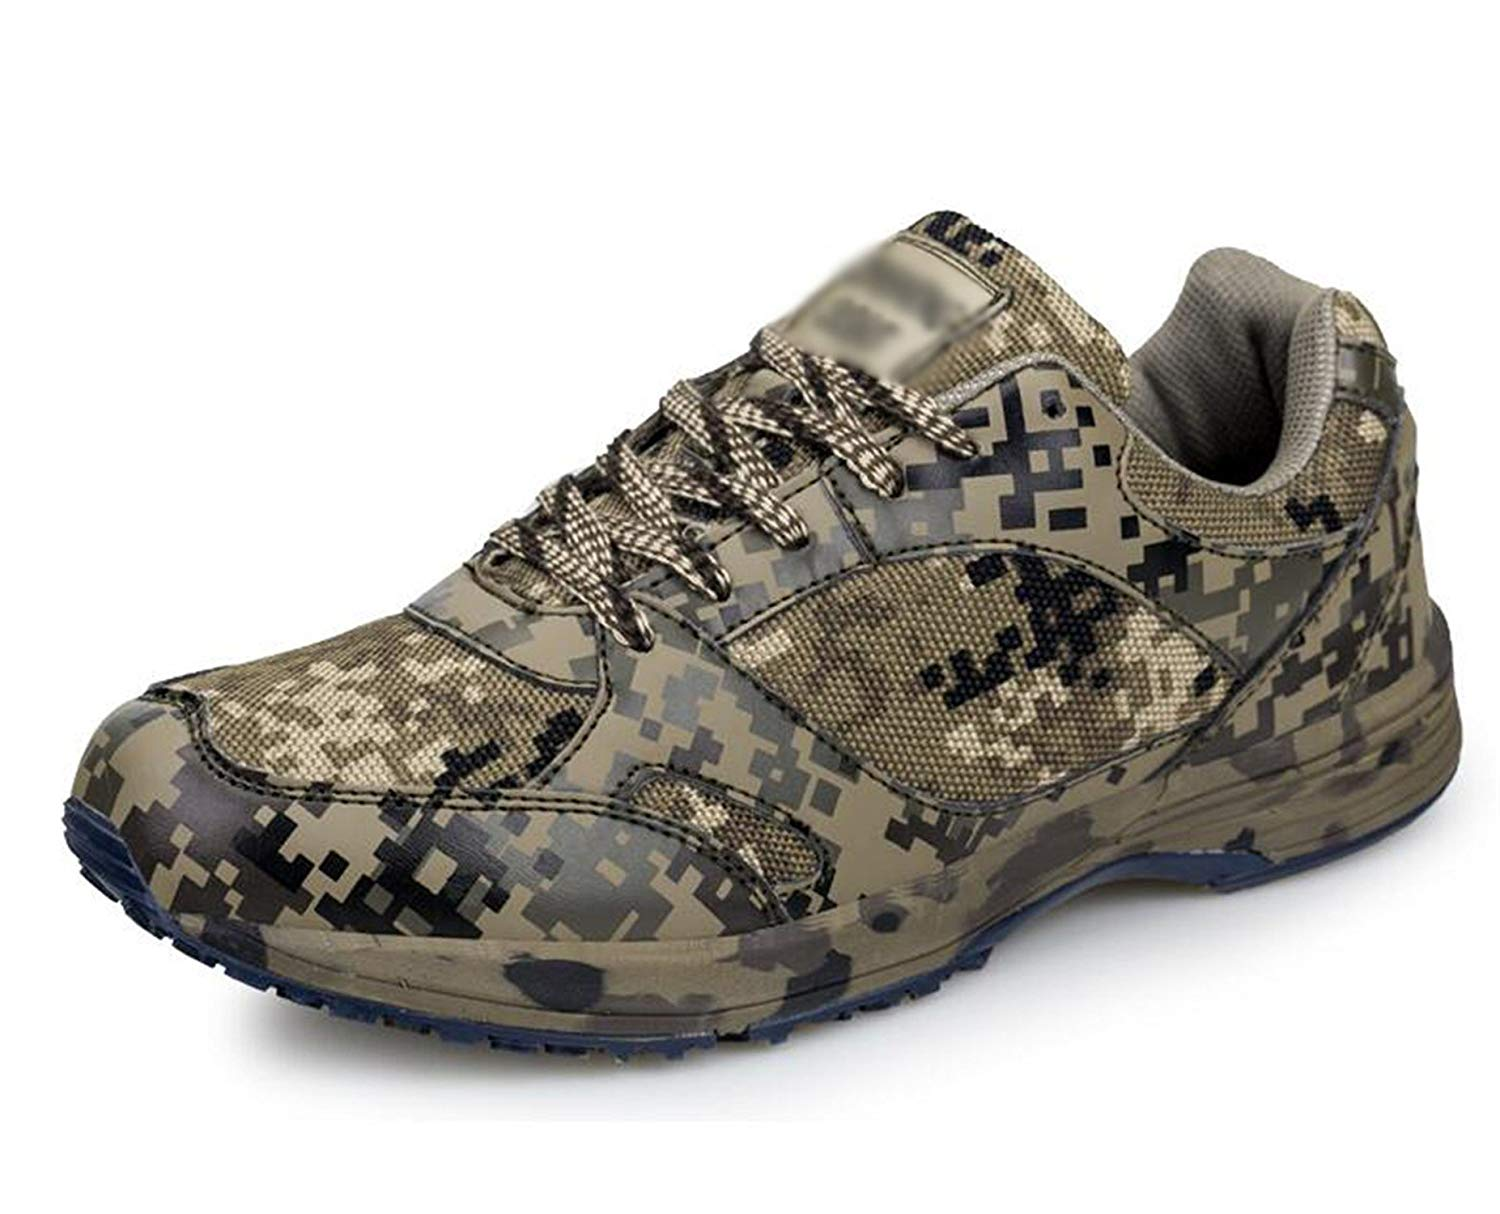 Smakke Men's Hiking Shoes Outdoor Sports Camouflage Army Climbing Shoes Combat Sports Shoes Camping Training Sneakers